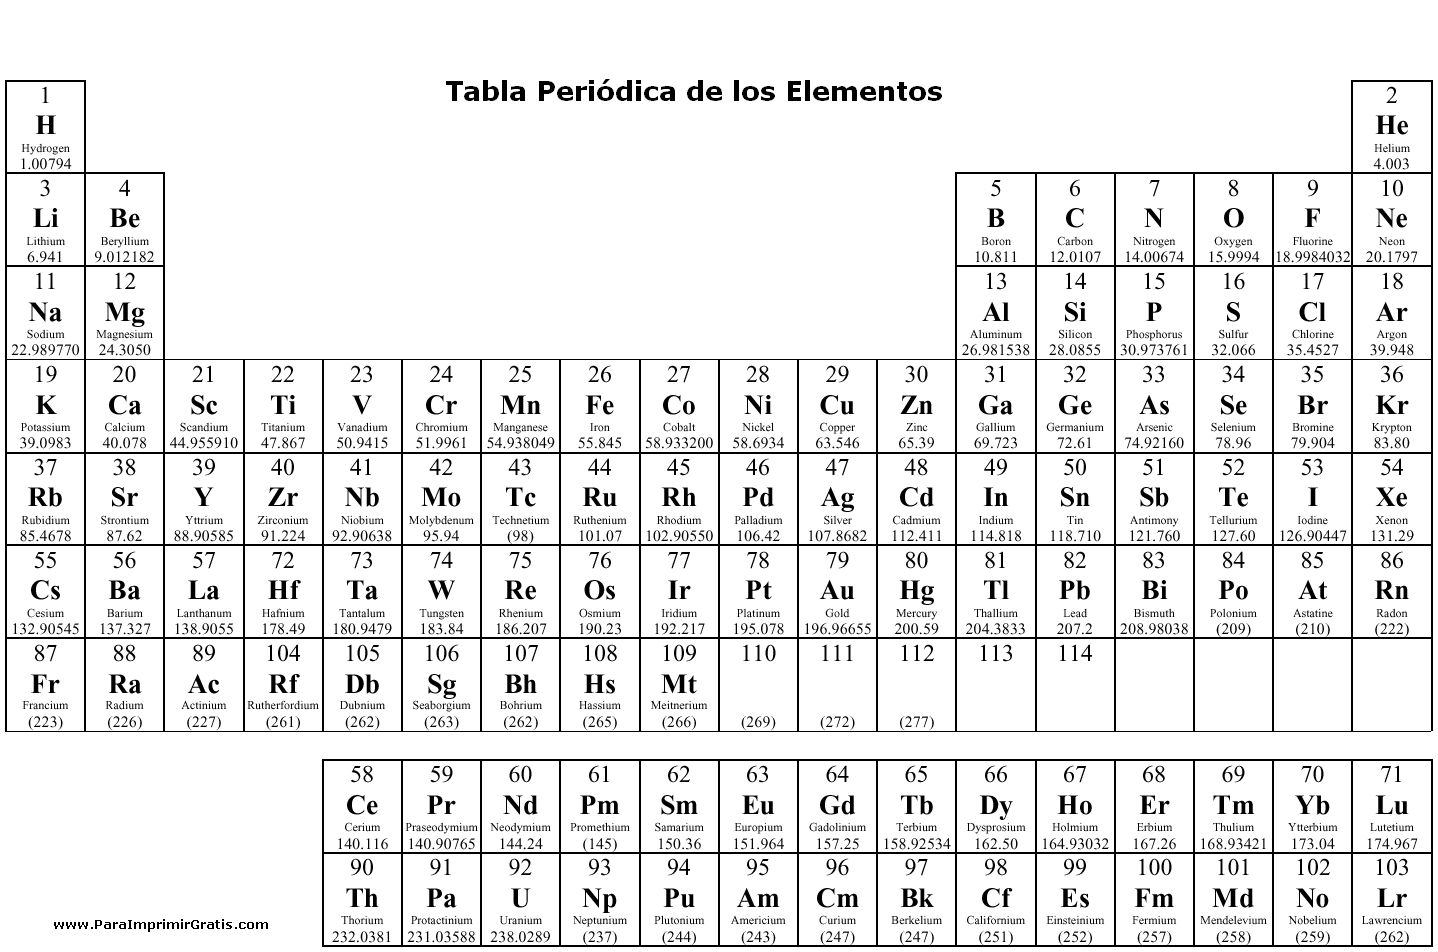 Tabla periodica y elementos pdf choice image periodic table and tabla periodica de los elementos actualizada 2013 pdf images nombres de los elementos de la tabla urtaz Gallery